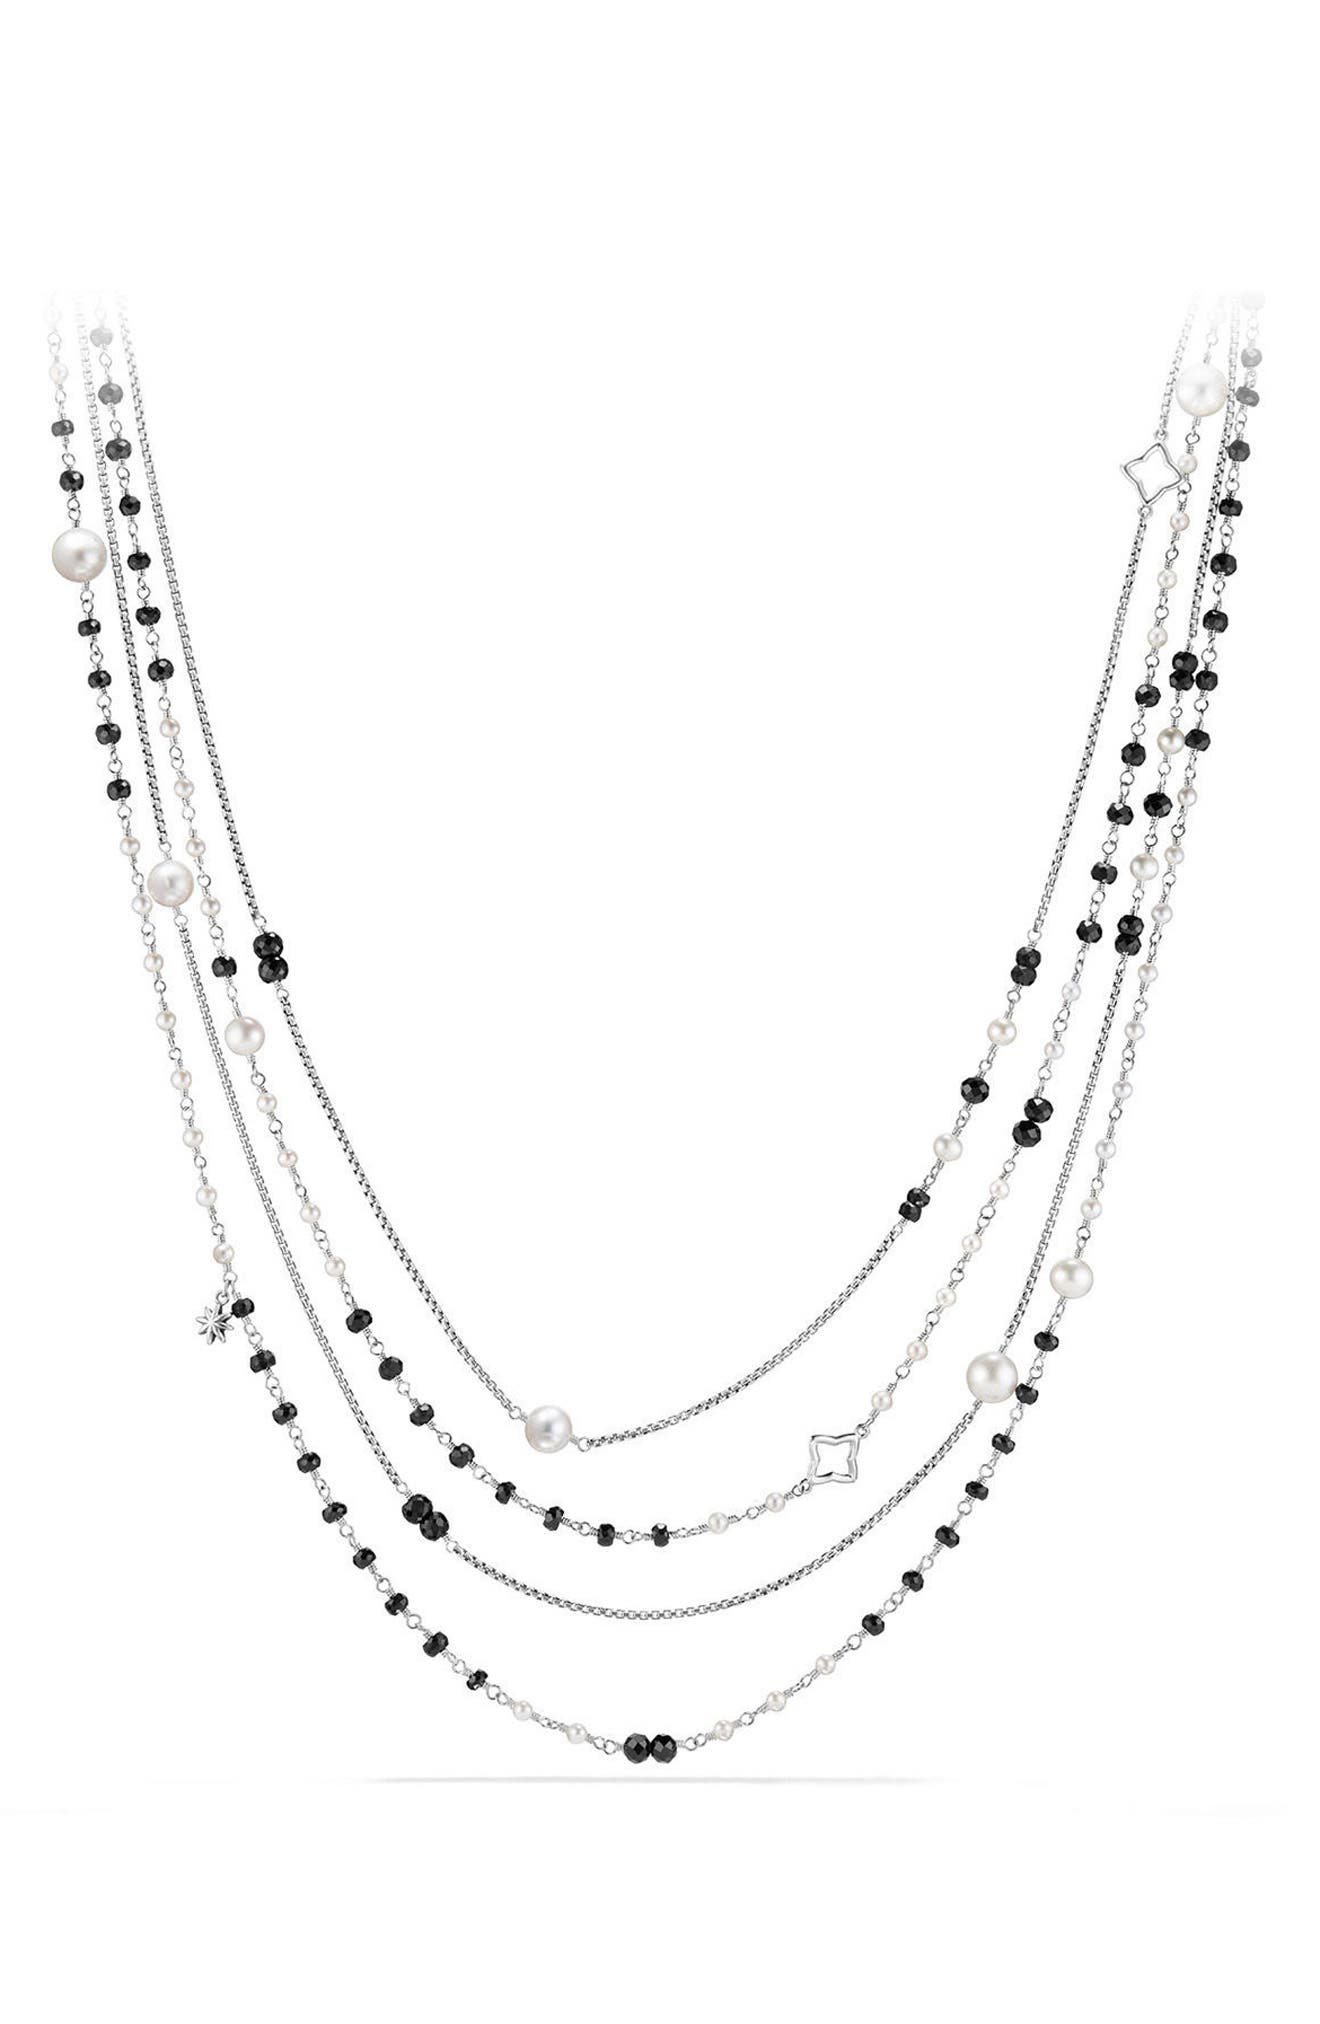 DAVID YURMAN, Solari Two Row Pearl Chain Necklace, Main thumbnail 1, color, PEARL/ BLACK SPINEL